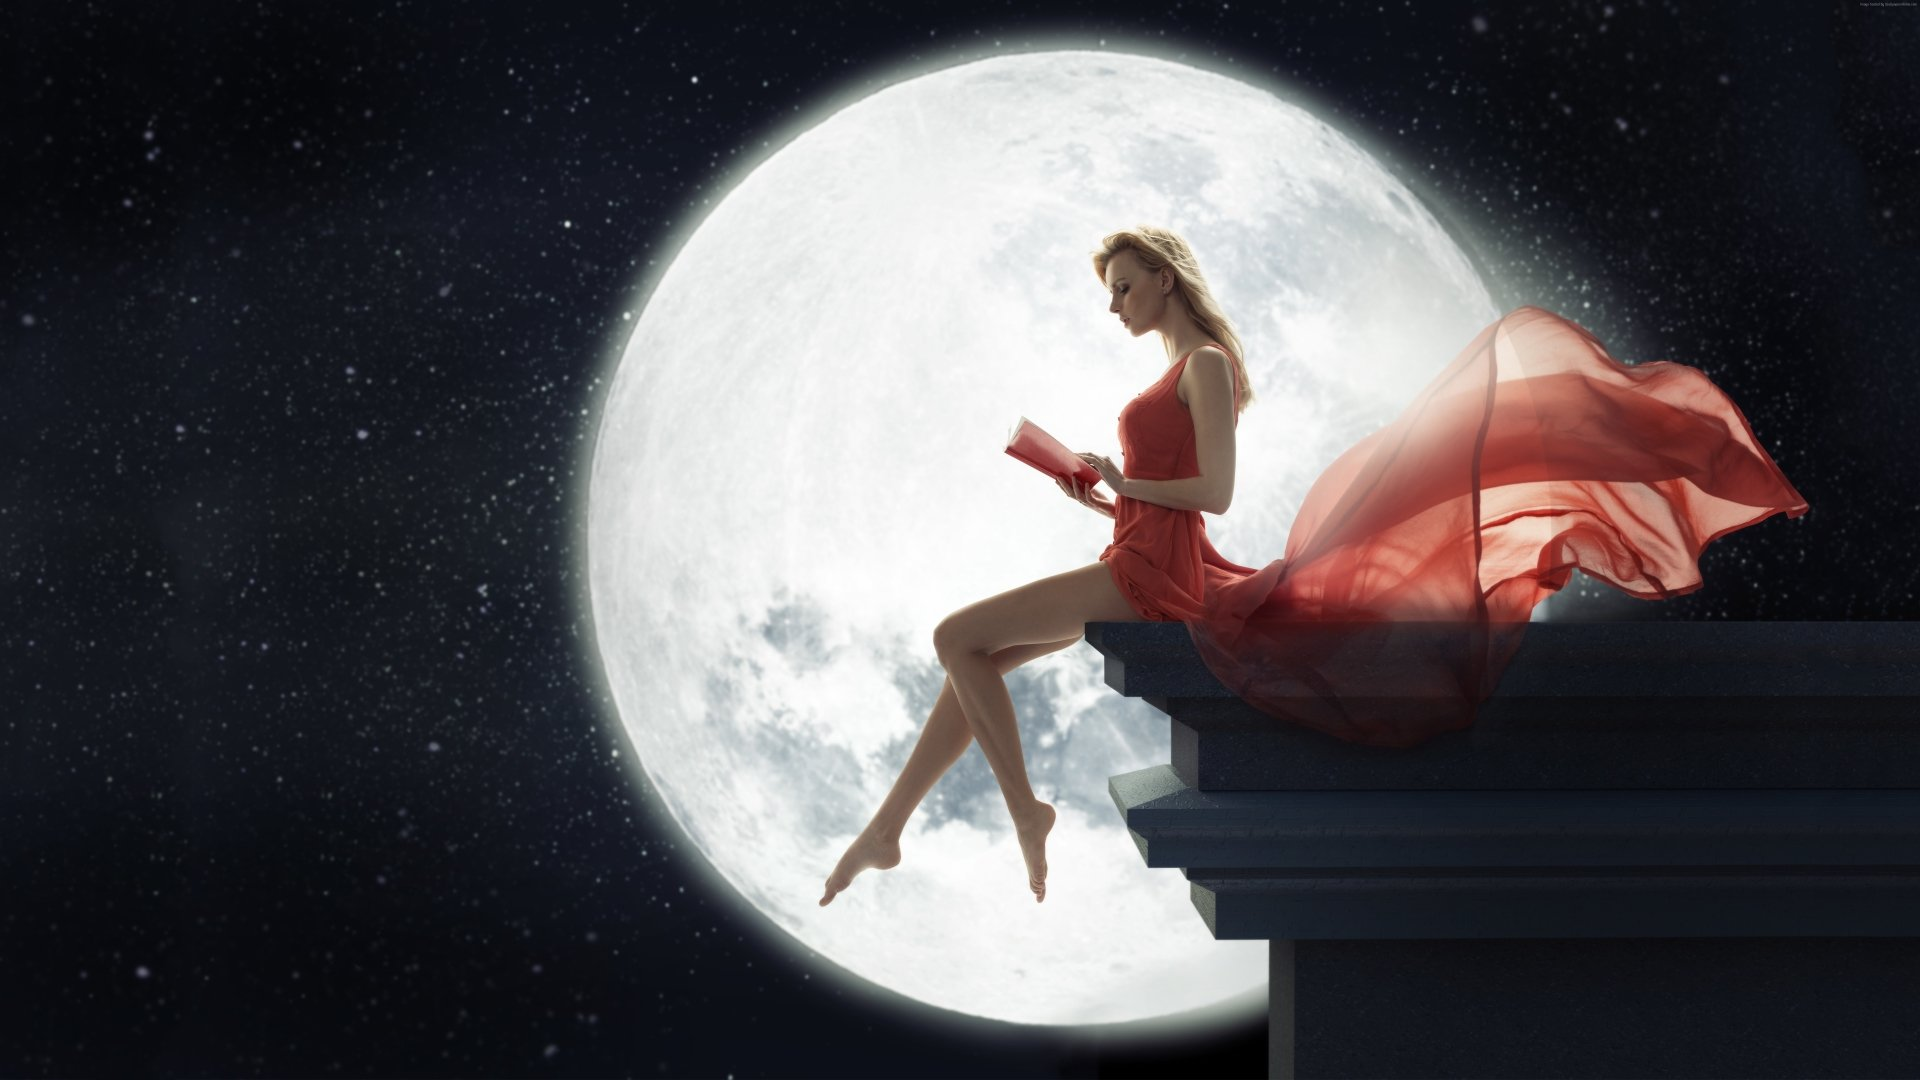 Fantasy - Women  Fantasy Woman Red Dress Moon Book Gown Wallpaper